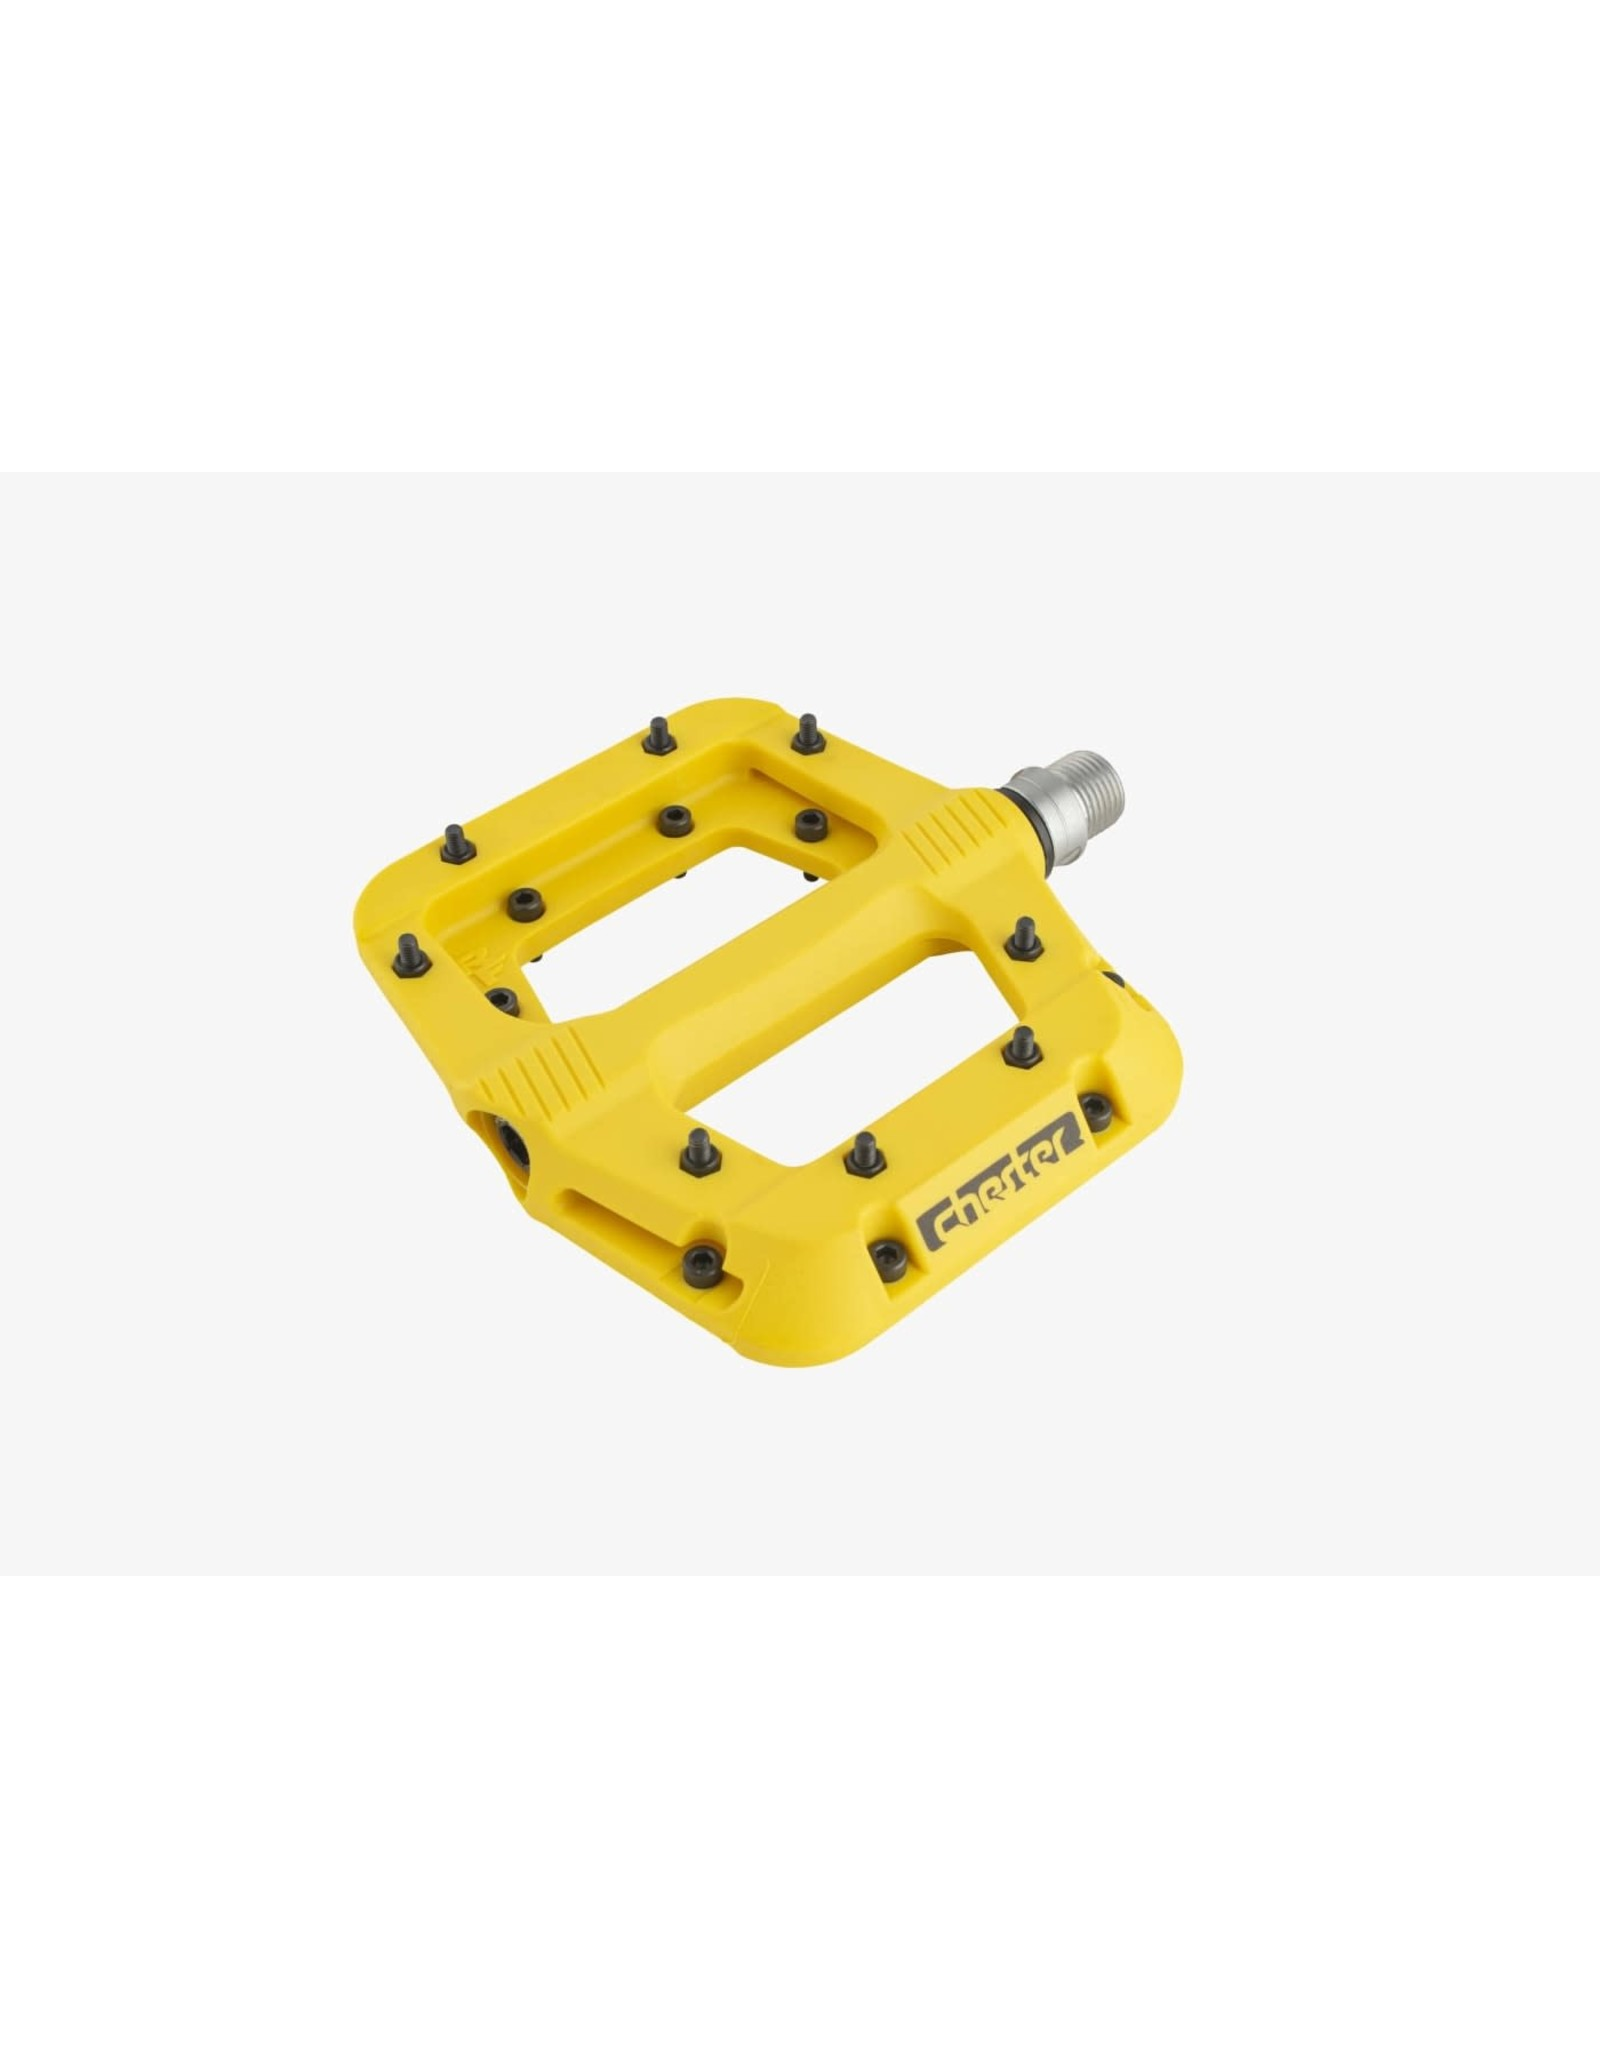 RaceFace Chester Pedals - Platform, Composite, Yellow